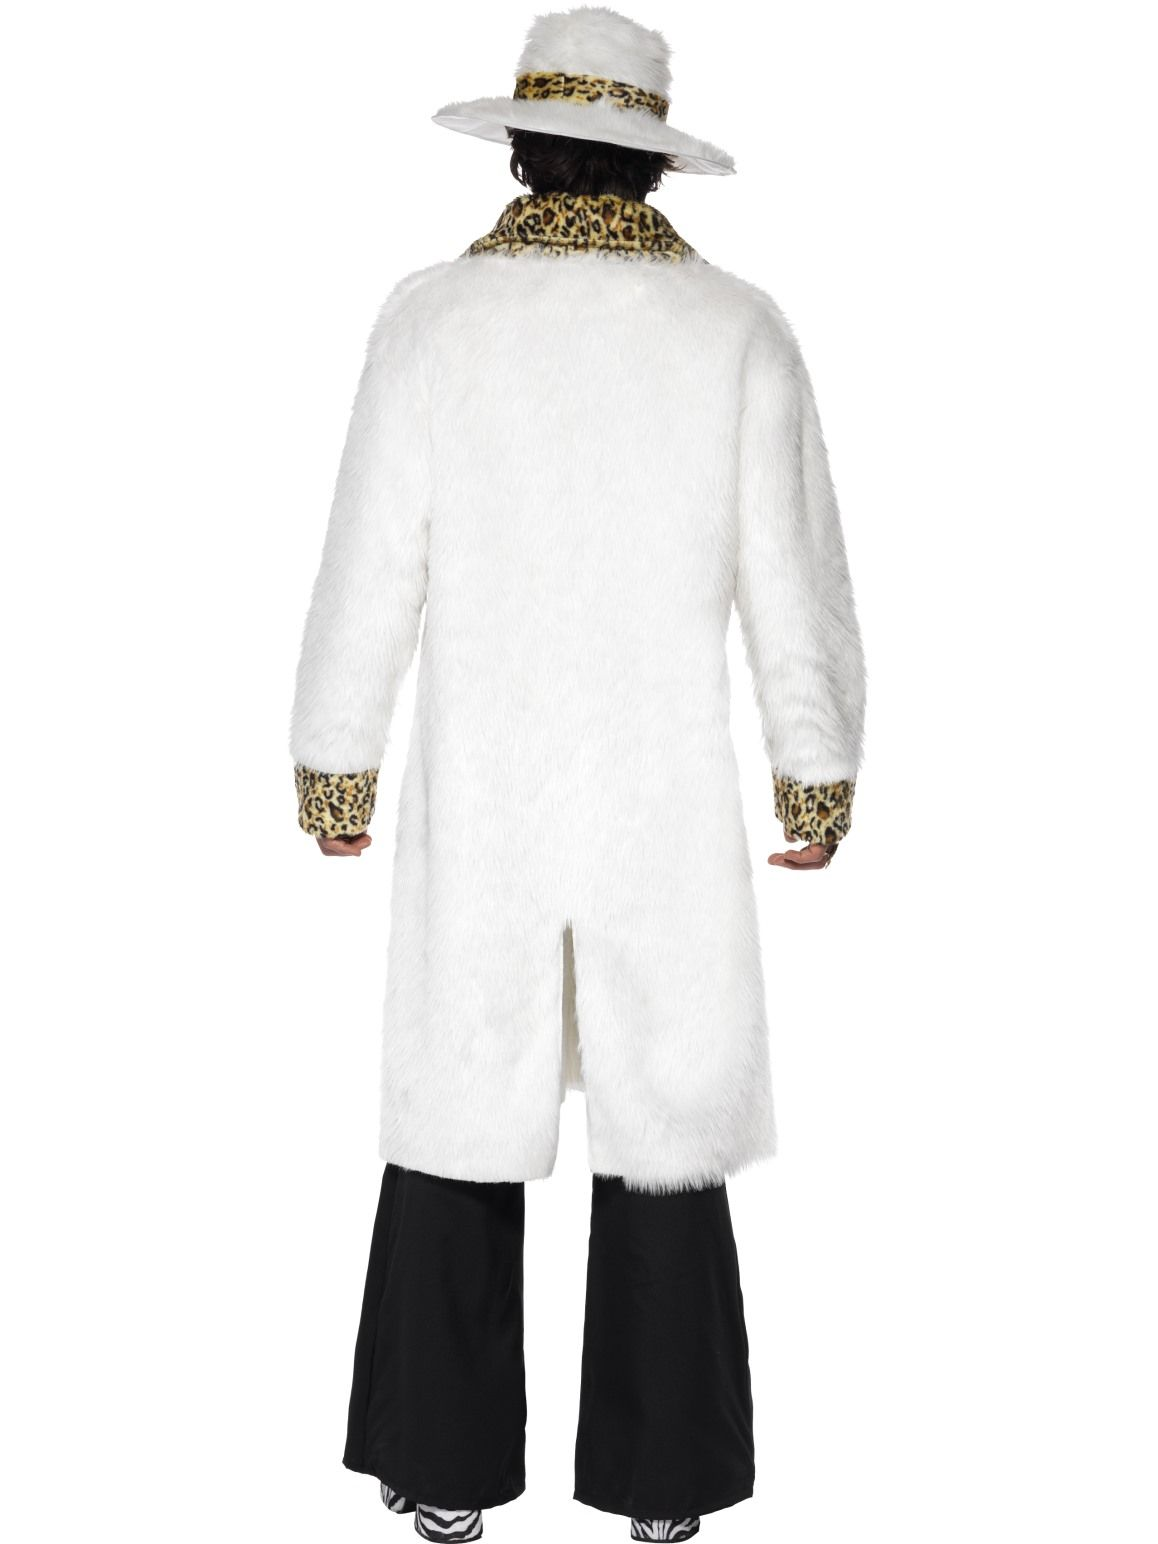 Pimp White 70s Costume - Buy